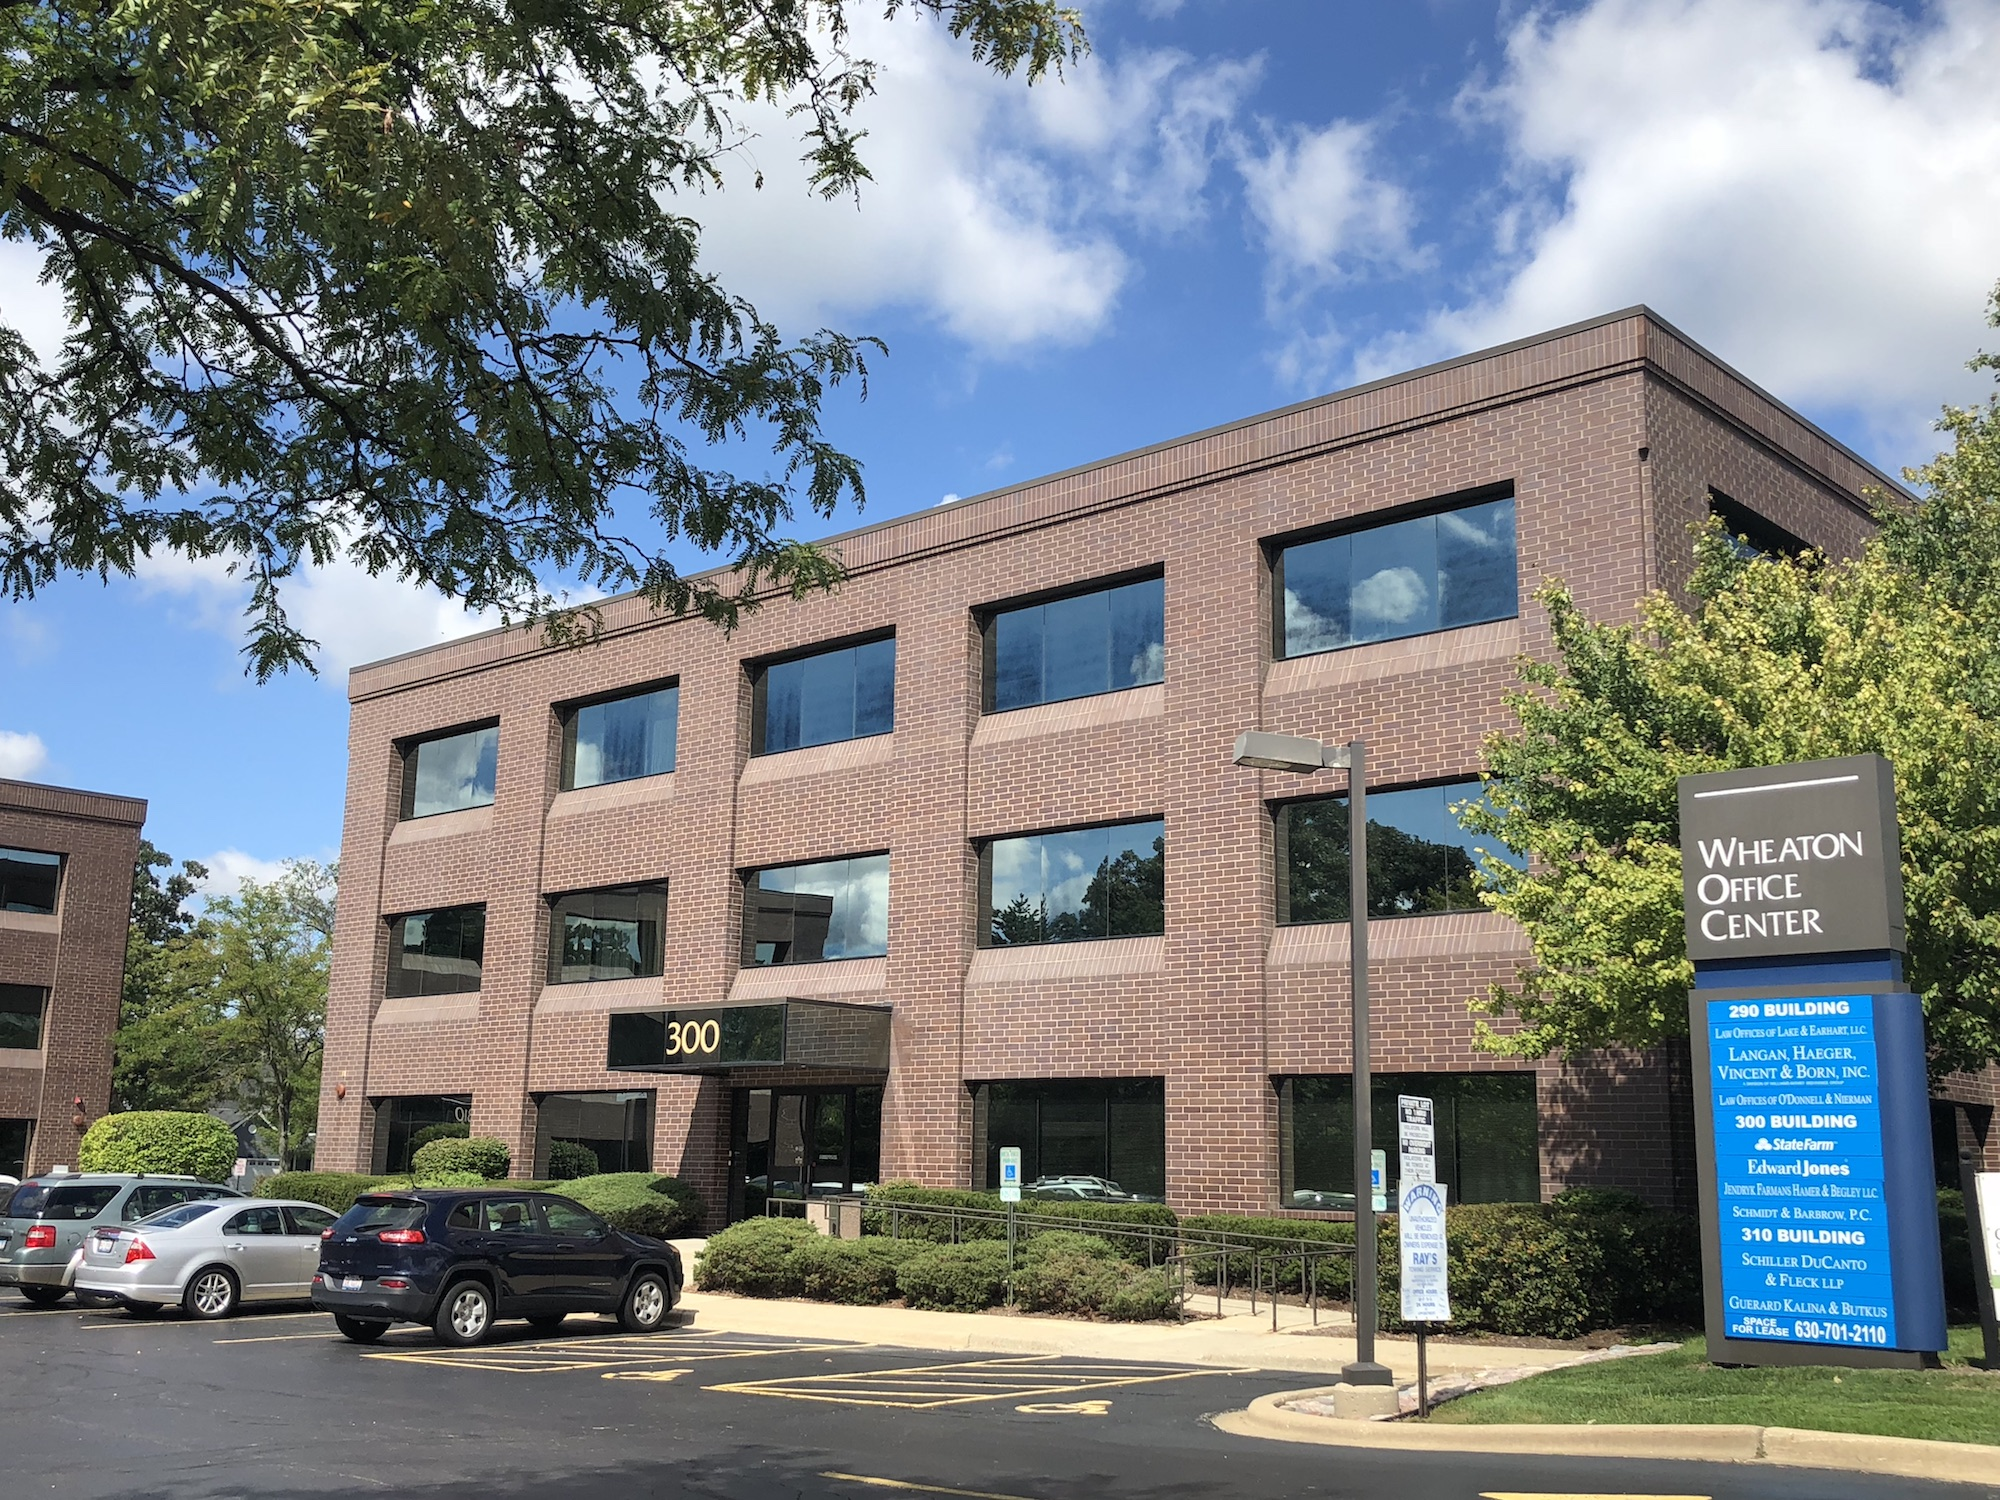 Office of Schaefer Law Group in Wheaton, IL